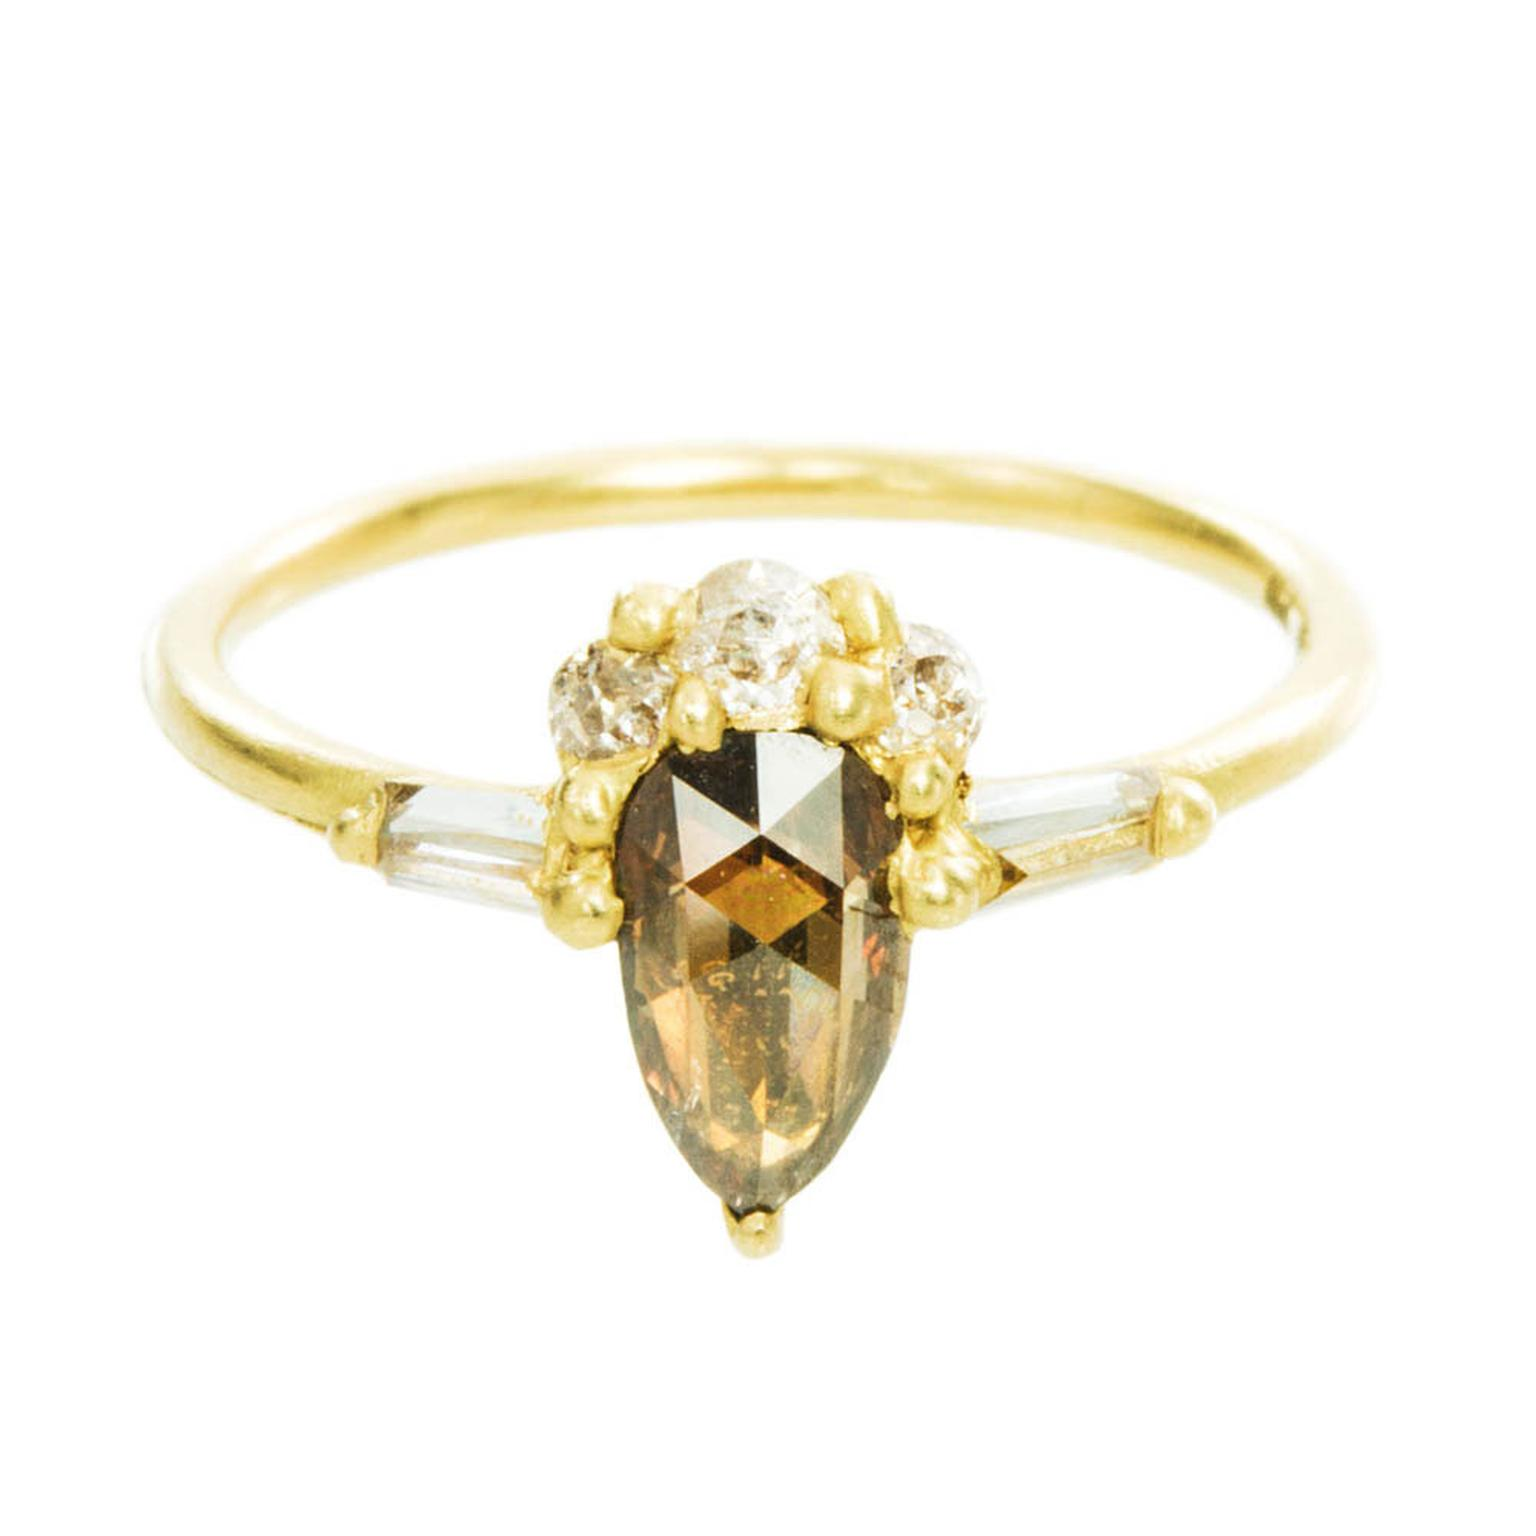 Polly Wales cognac diamond engagement ring